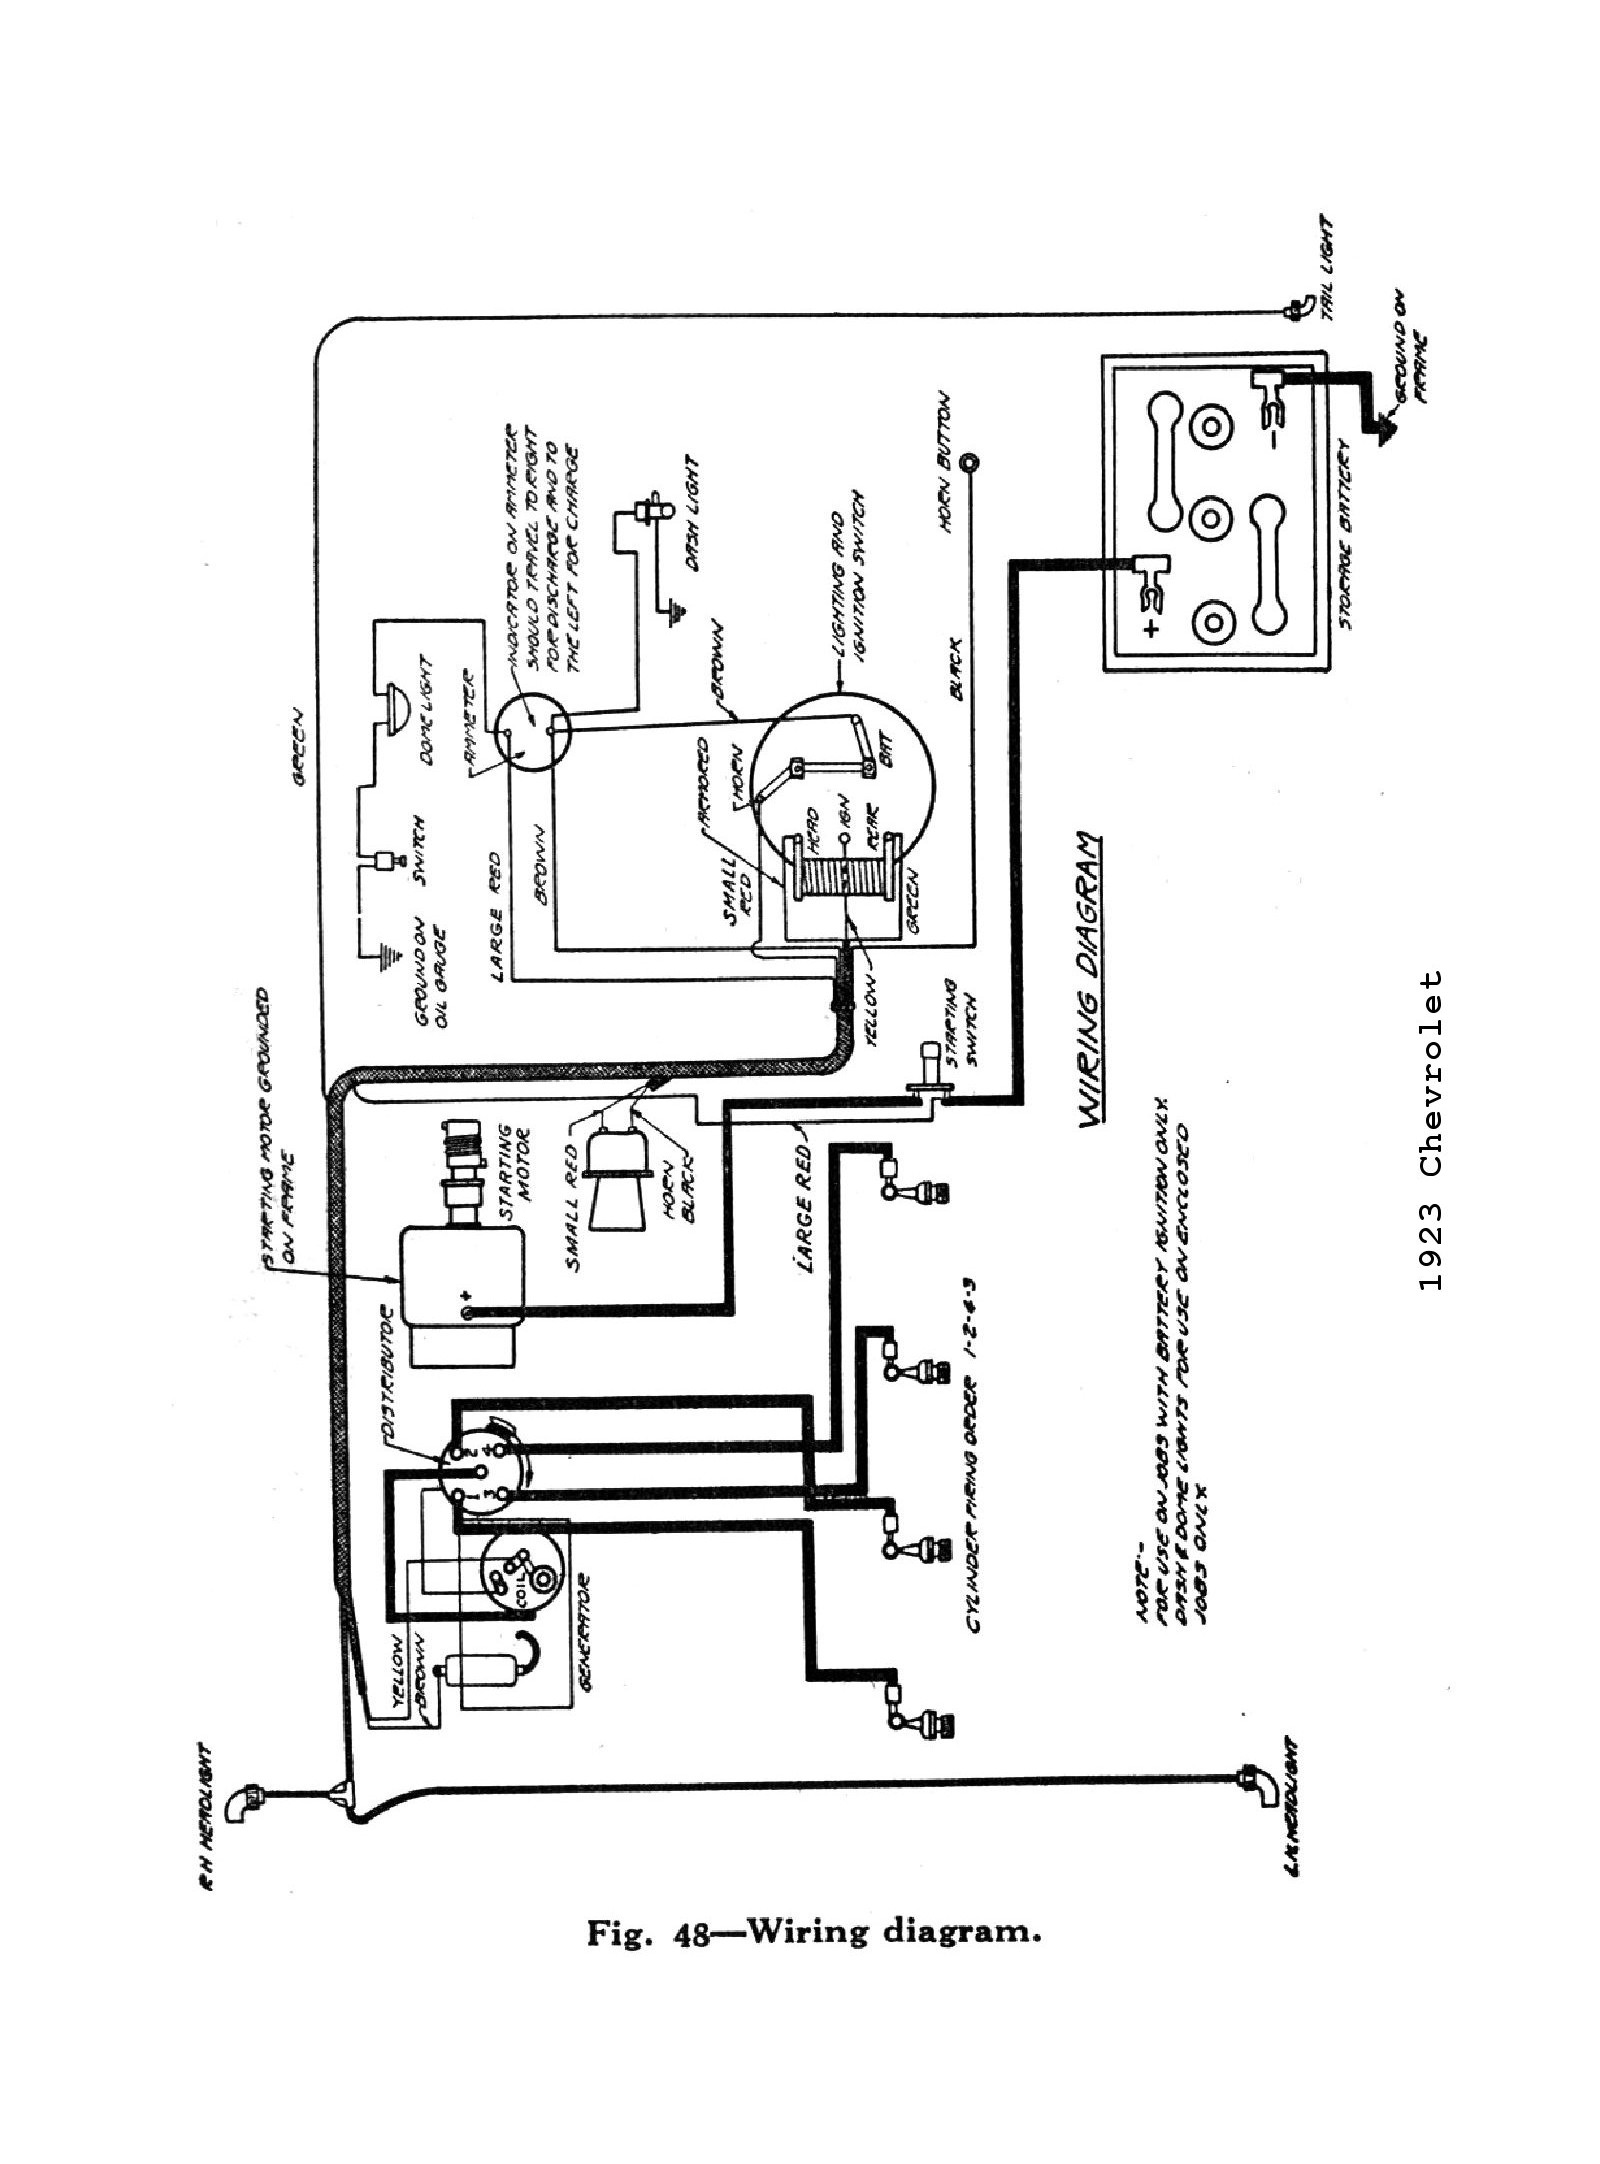 chevy wiring diagrams ignition wiring diagram for a 1960 chevrolet impala chevrolet ignition wiring diagram